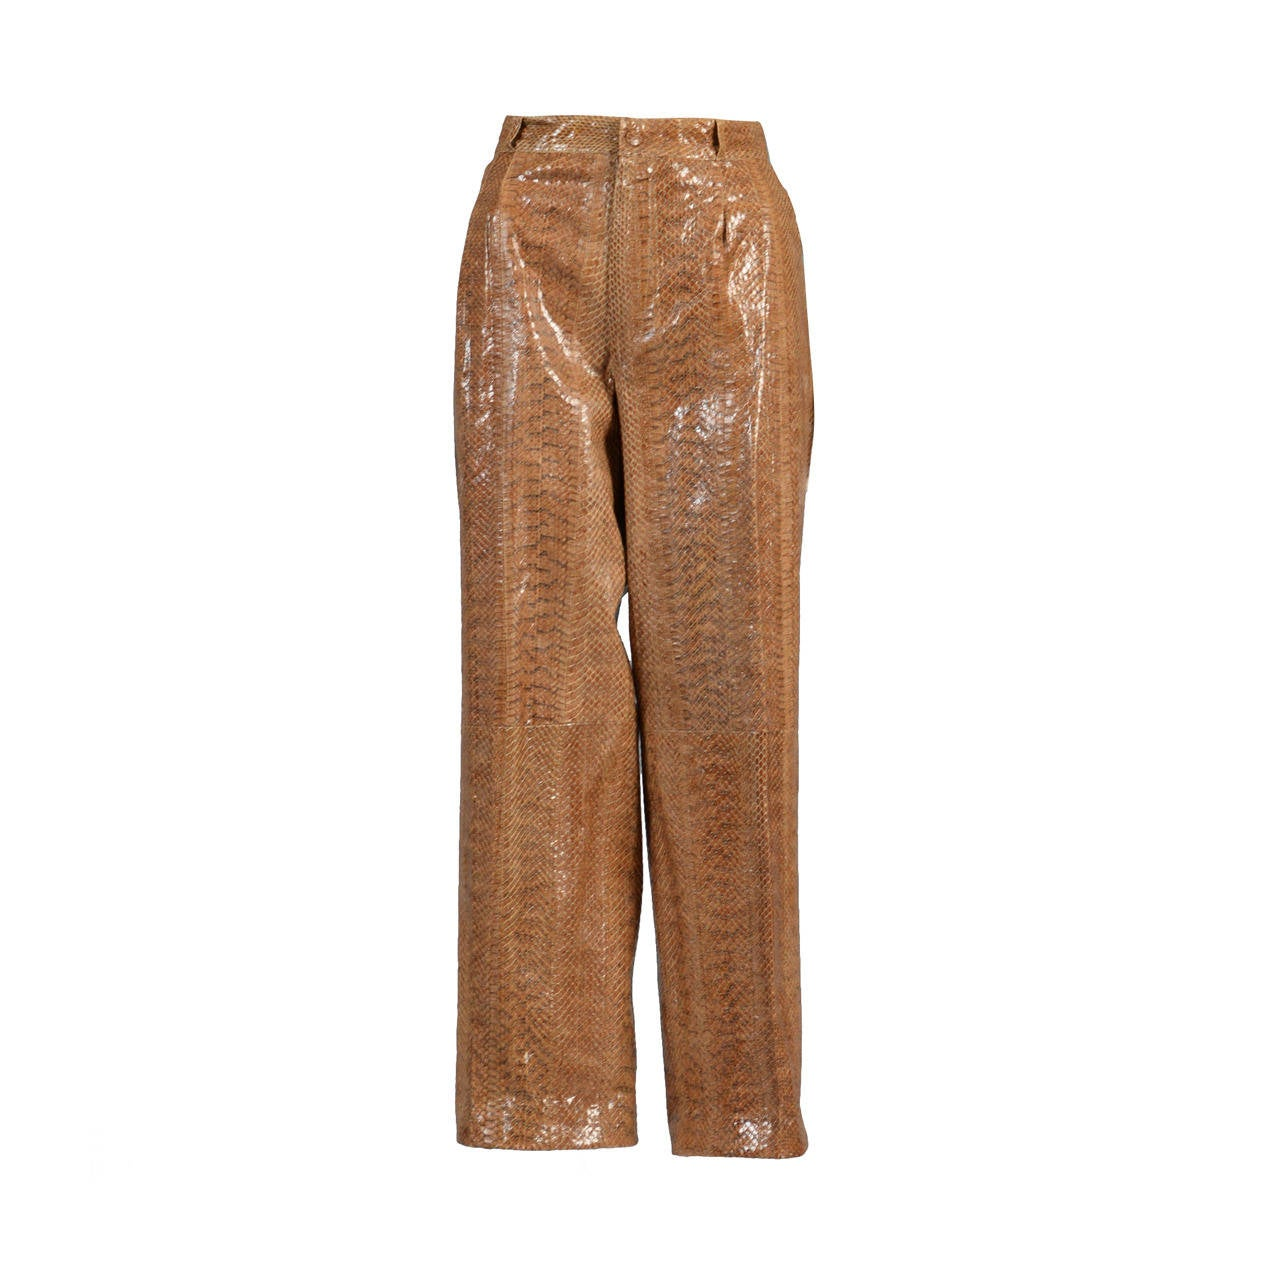 1980 S High Waisted Genuine Snakeskin Pants At 1stdibs